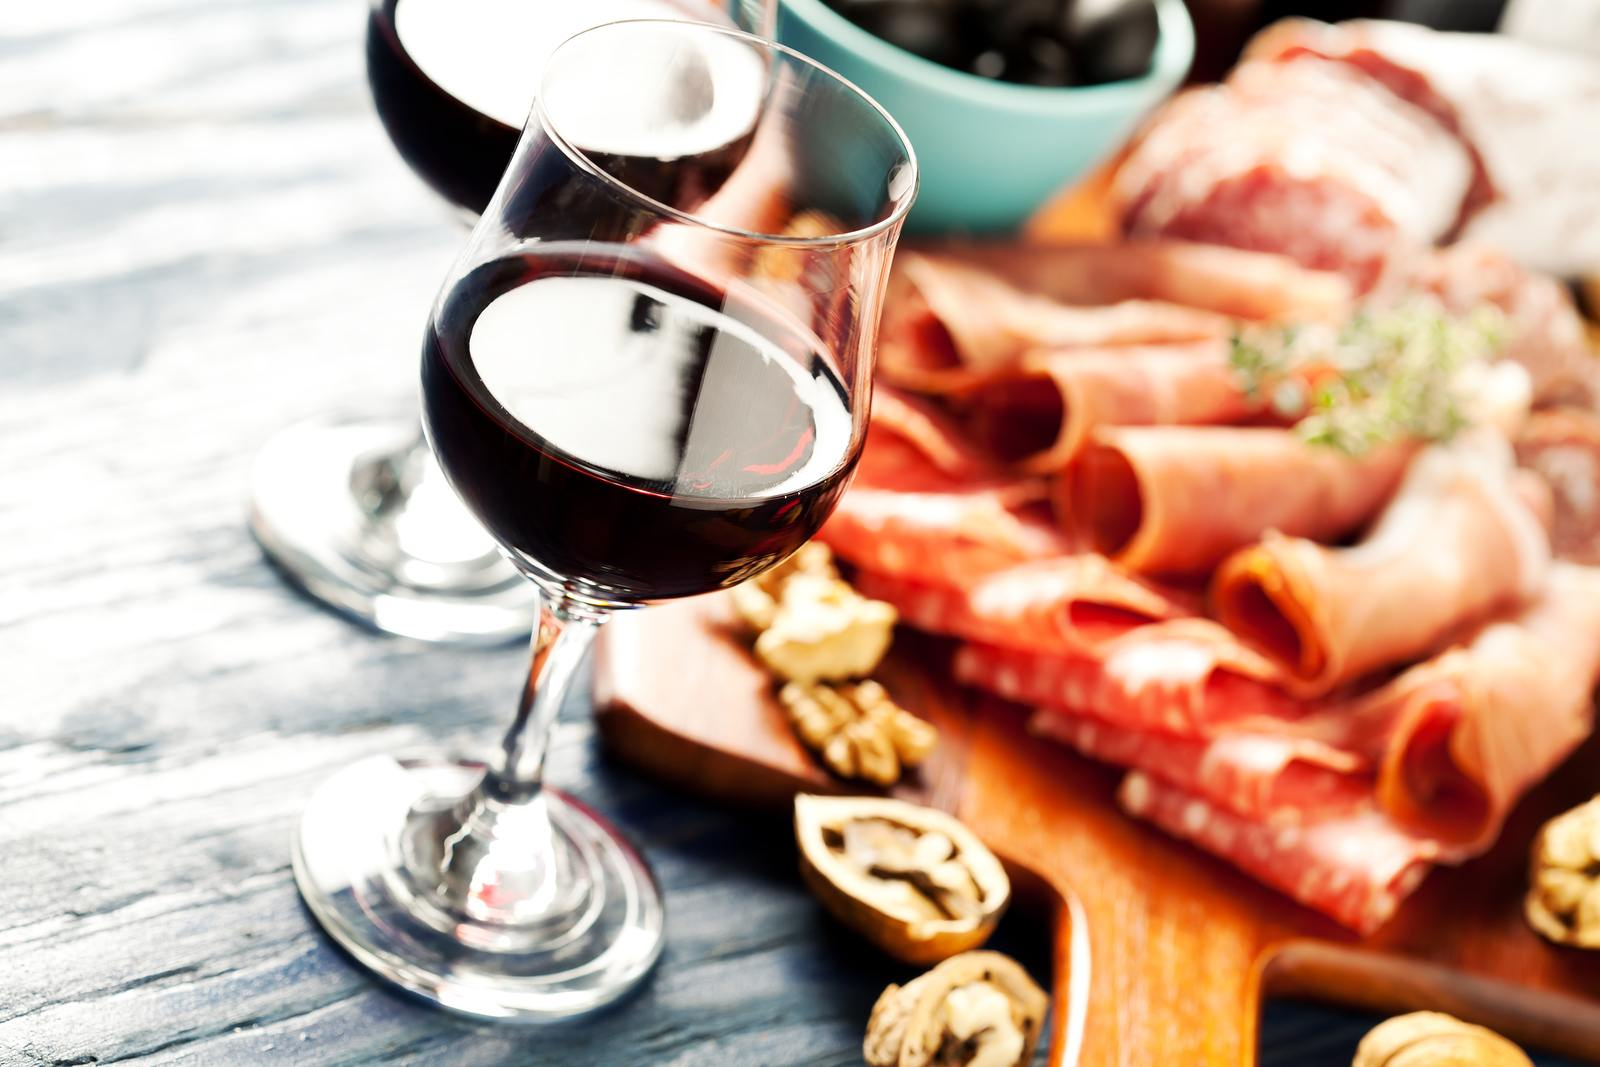 charcuterie board with glass of wine